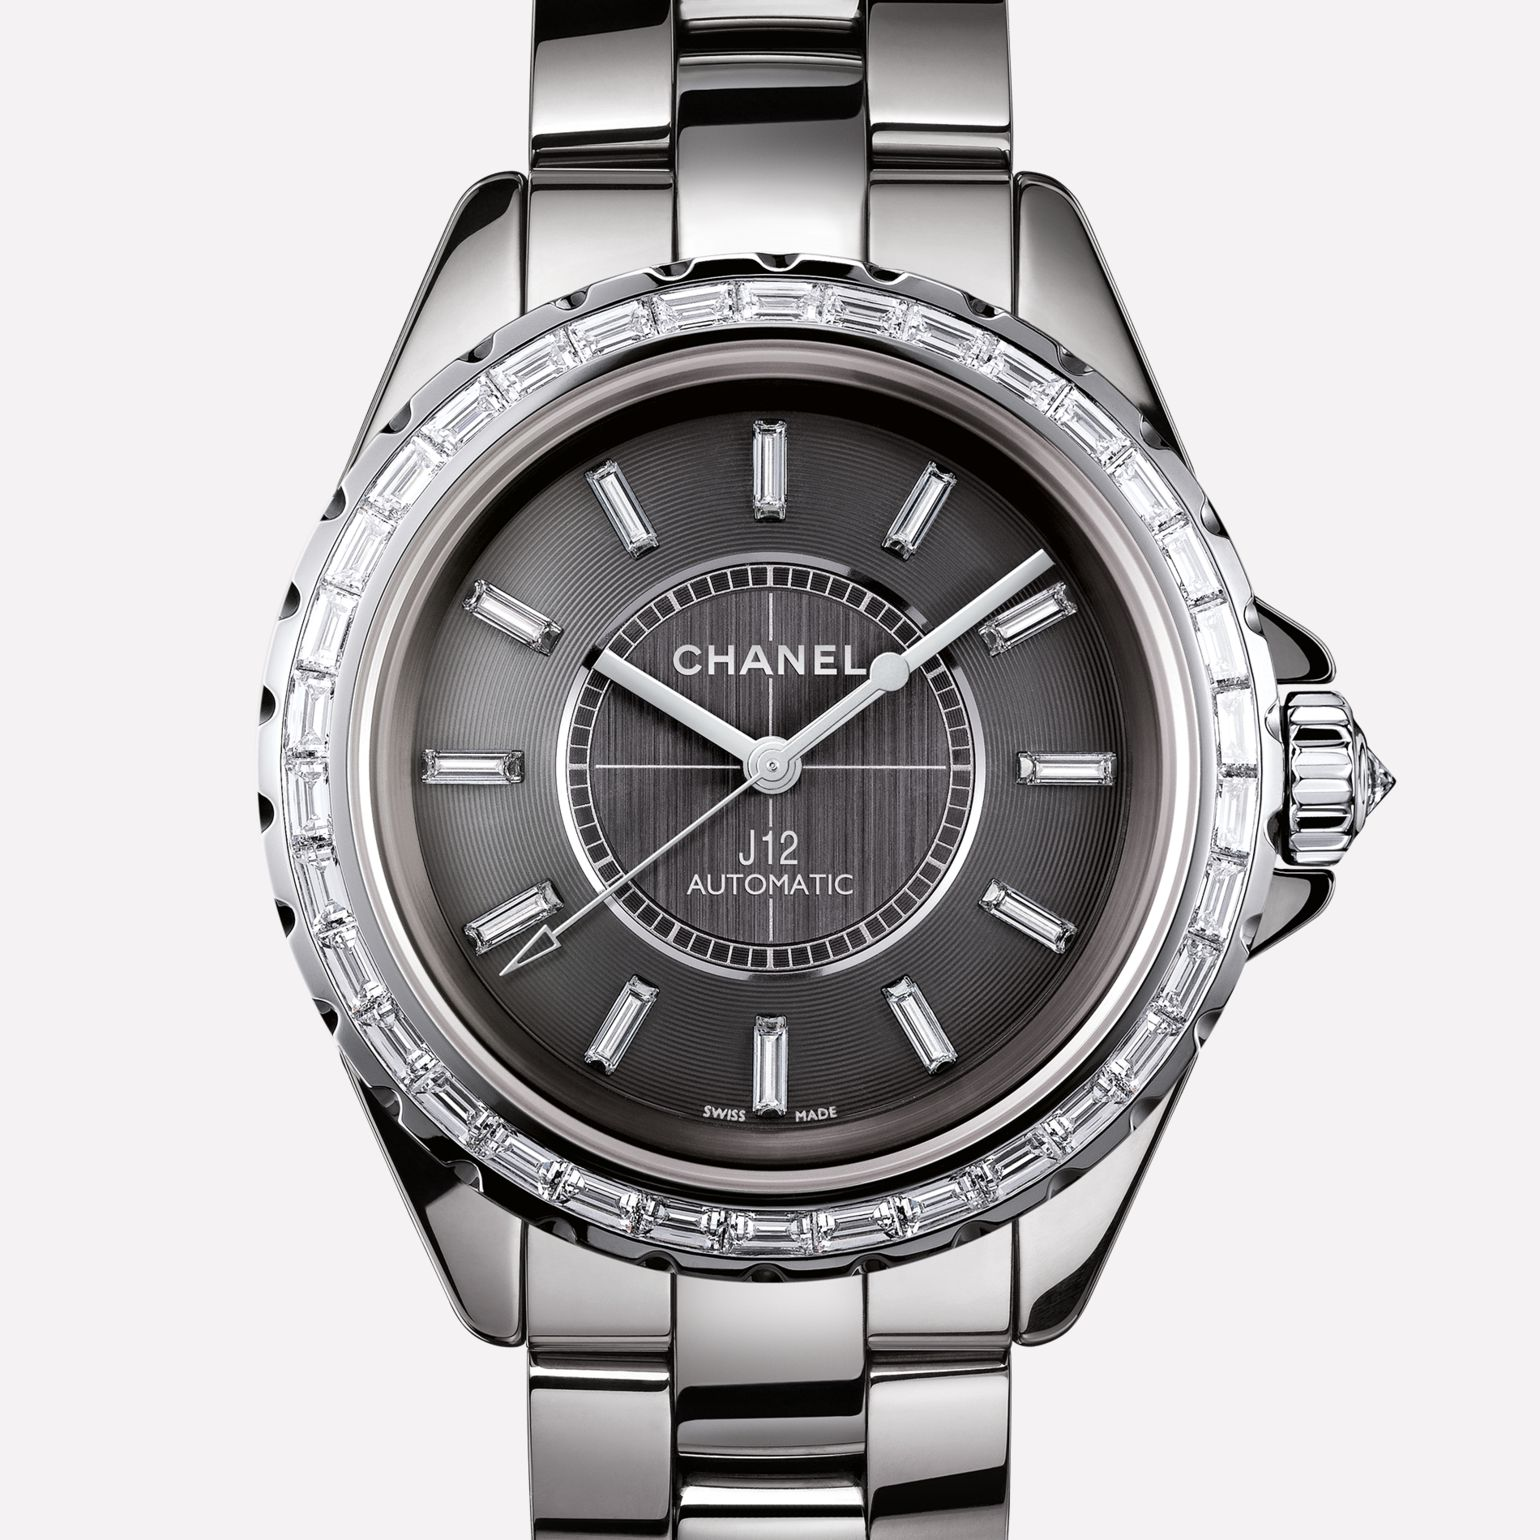 J12 Jewelry Watch Titanium ceramic and white gold, baguette-cut diamond bezel and indicators